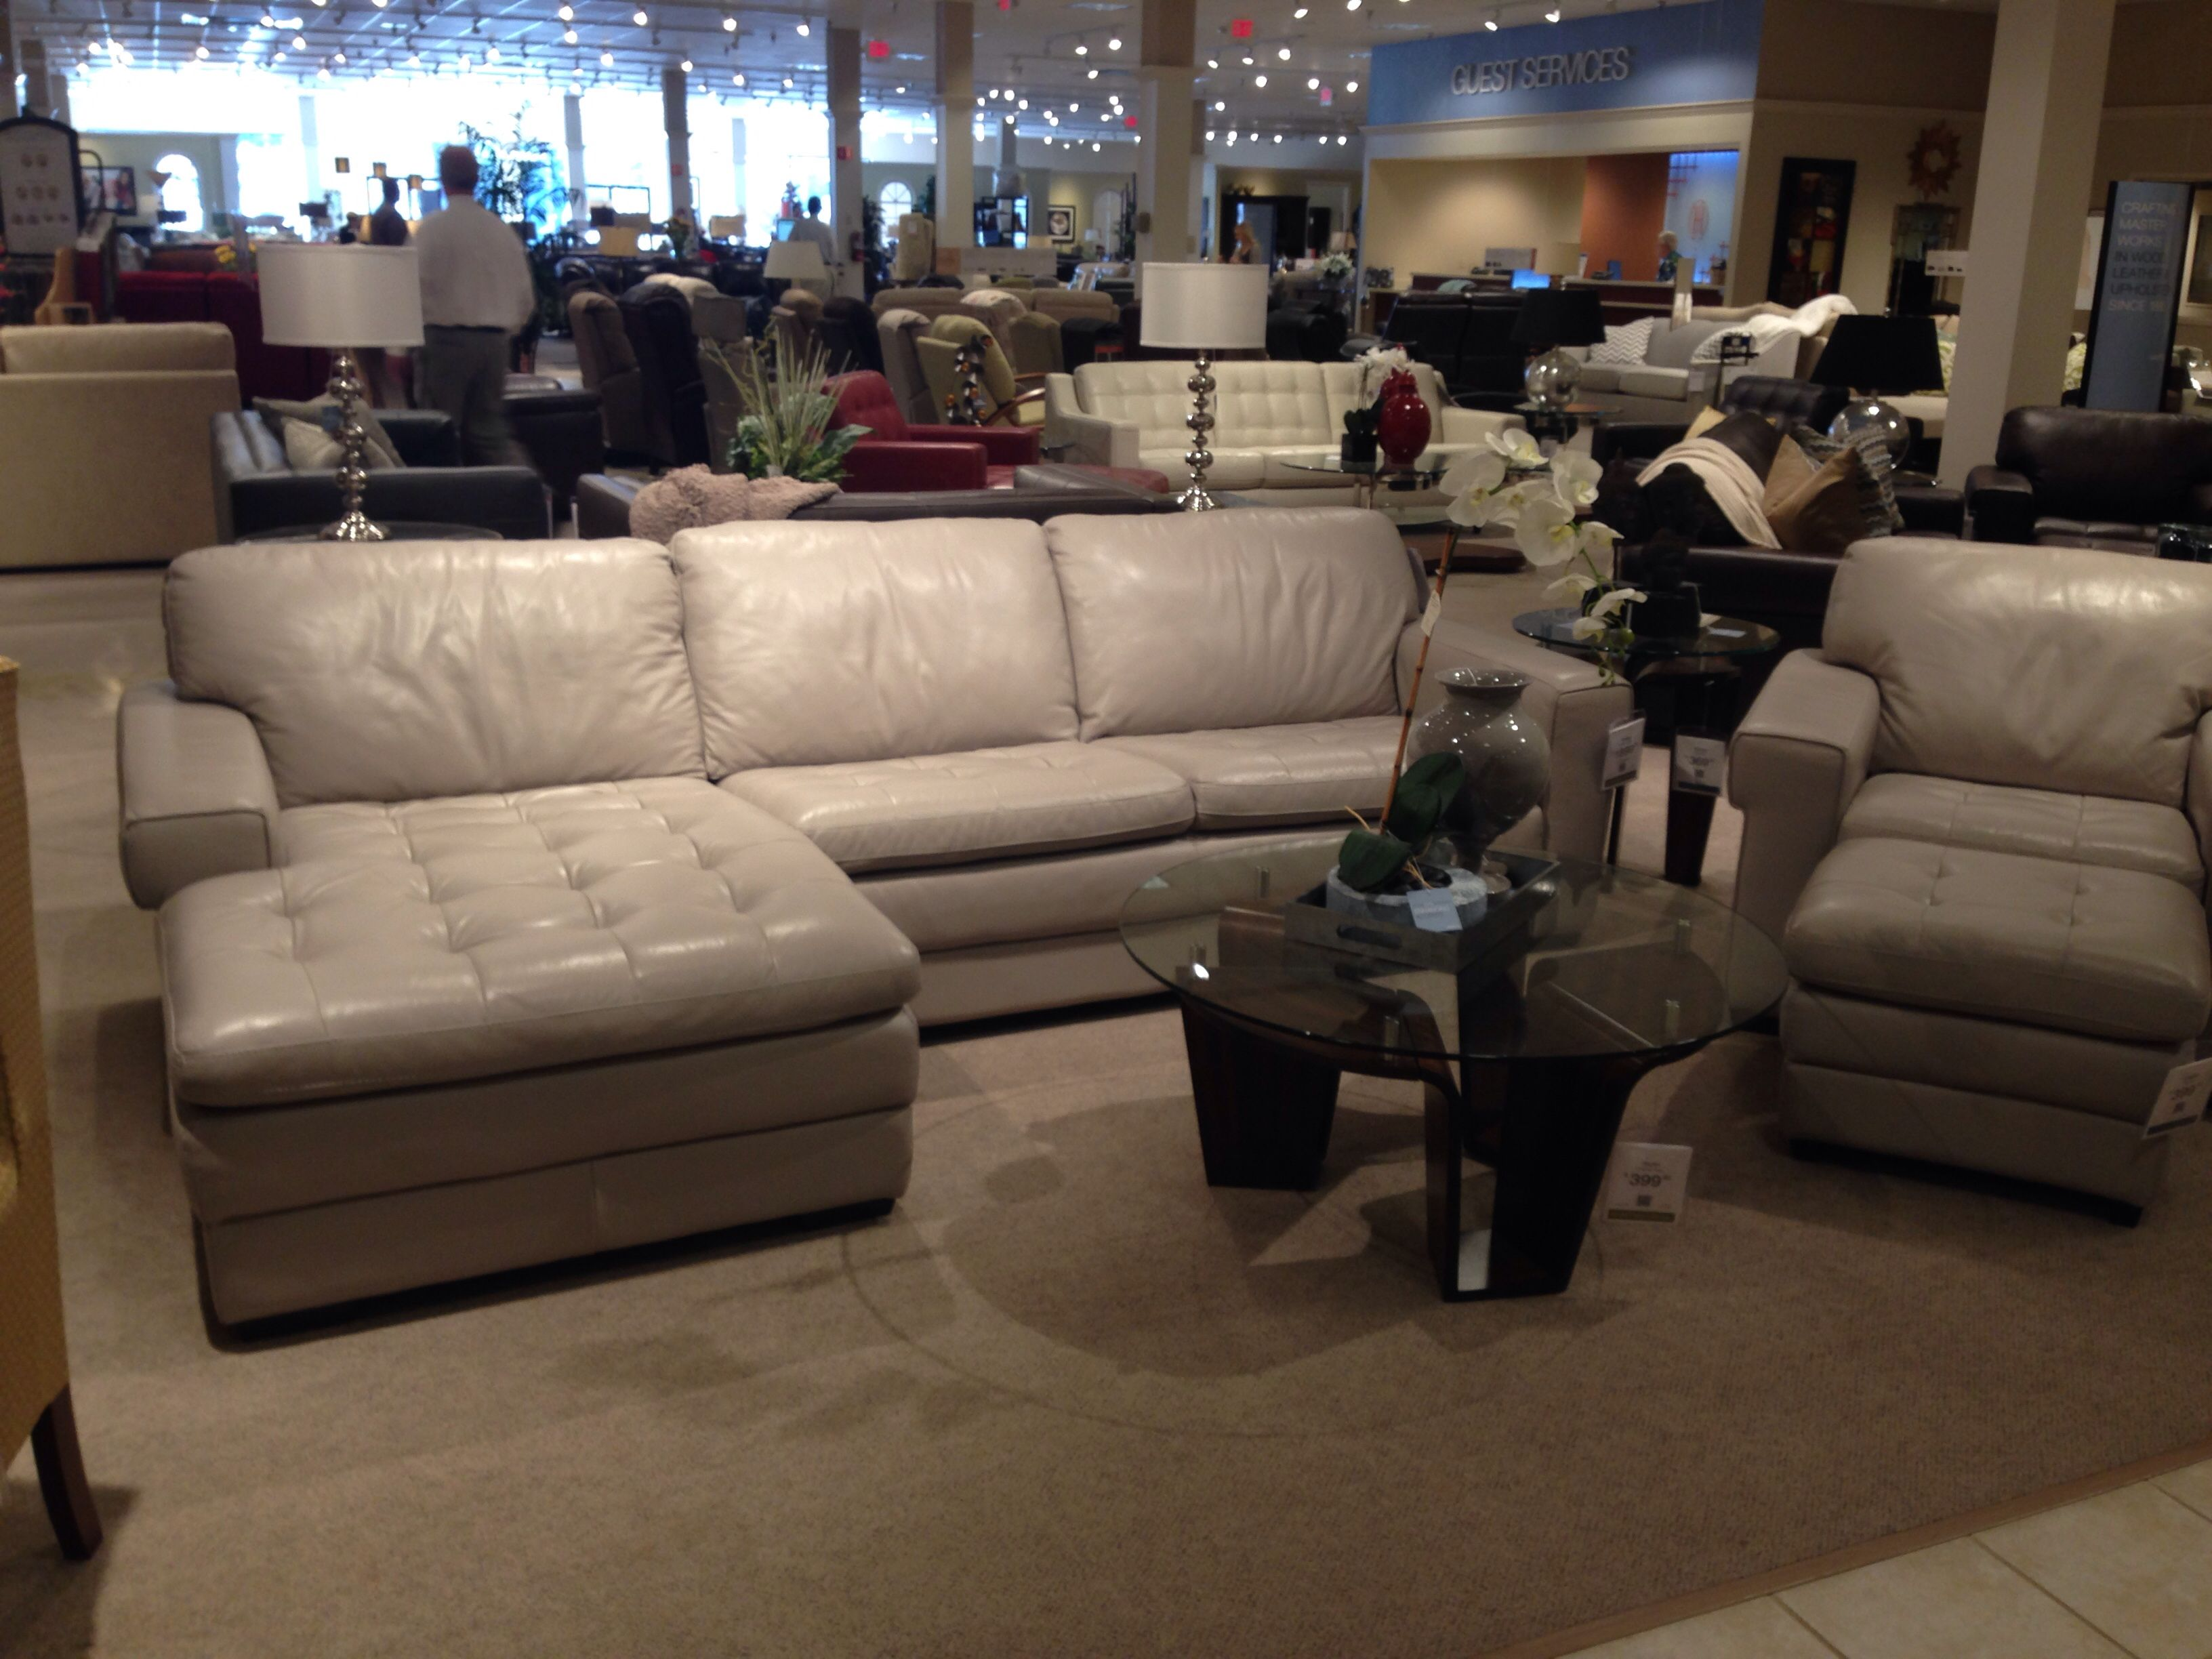 Surprising Galaxy Sectional Havertys Living Room Decor Family Room Home Pdpeps Interior Chair Design Pdpepsorg